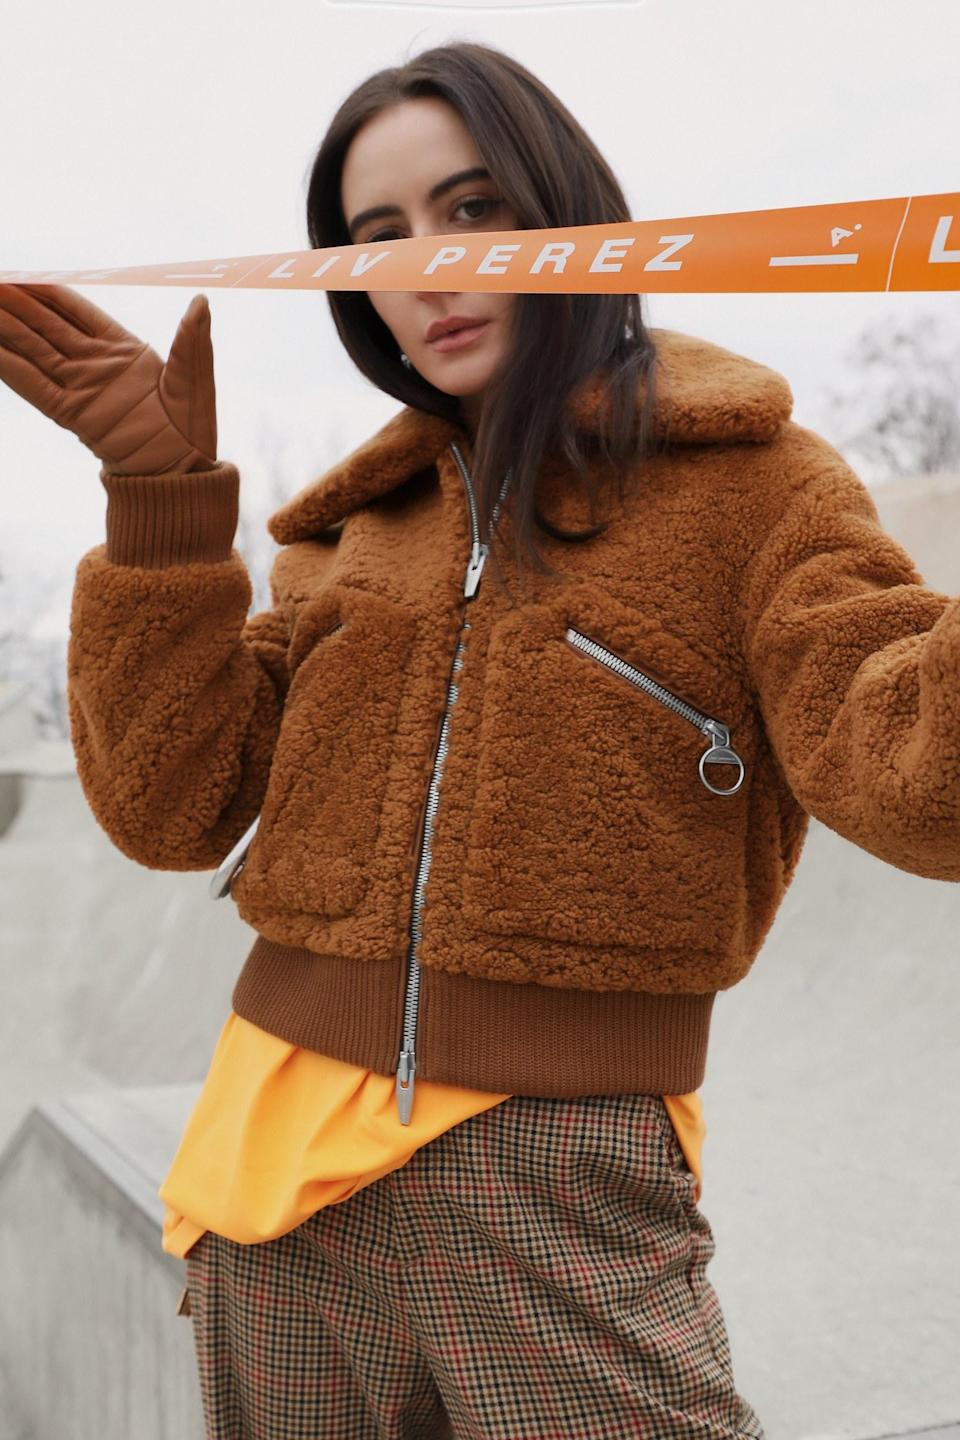 """Introducing the Lamborghini of teddy coats made by everyone's favorite luxury coat brand, <a href=""""https://thearrivals.com/"""" rel=""""nofollow noopener"""" target=""""_blank"""" data-ylk=""""slk:The Arrivals"""" class=""""link rapid-noclick-resp"""">The Arrivals</a>. This coat doesn't just look cool; it's actually made (and proven) to endure extreme weather conditions. It's also made with the best materials and expert craftsmanship, and comes with a lifetime warranty (something most coats don't have). It's also known to sell out (with a waiting list of more than 900), so if you're looking to make a big investment, the <a href=""""https://thearrivals.com/products/kala#natural"""" rel=""""nofollow noopener"""" target=""""_blank"""" data-ylk=""""slk:Kala Teddy Bomber"""" class=""""link rapid-noclick-resp"""">Kala Teddy Bomber</a> is a good one to consider. It'll never go out of style, and you can wear it for all the fall and winters to come. $895, The Arrivals. <a href=""""https://thearrivals.com/products/kala#natural"""" rel=""""nofollow noopener"""" target=""""_blank"""" data-ylk=""""slk:Get it now!"""" class=""""link rapid-noclick-resp"""">Get it now!</a>"""